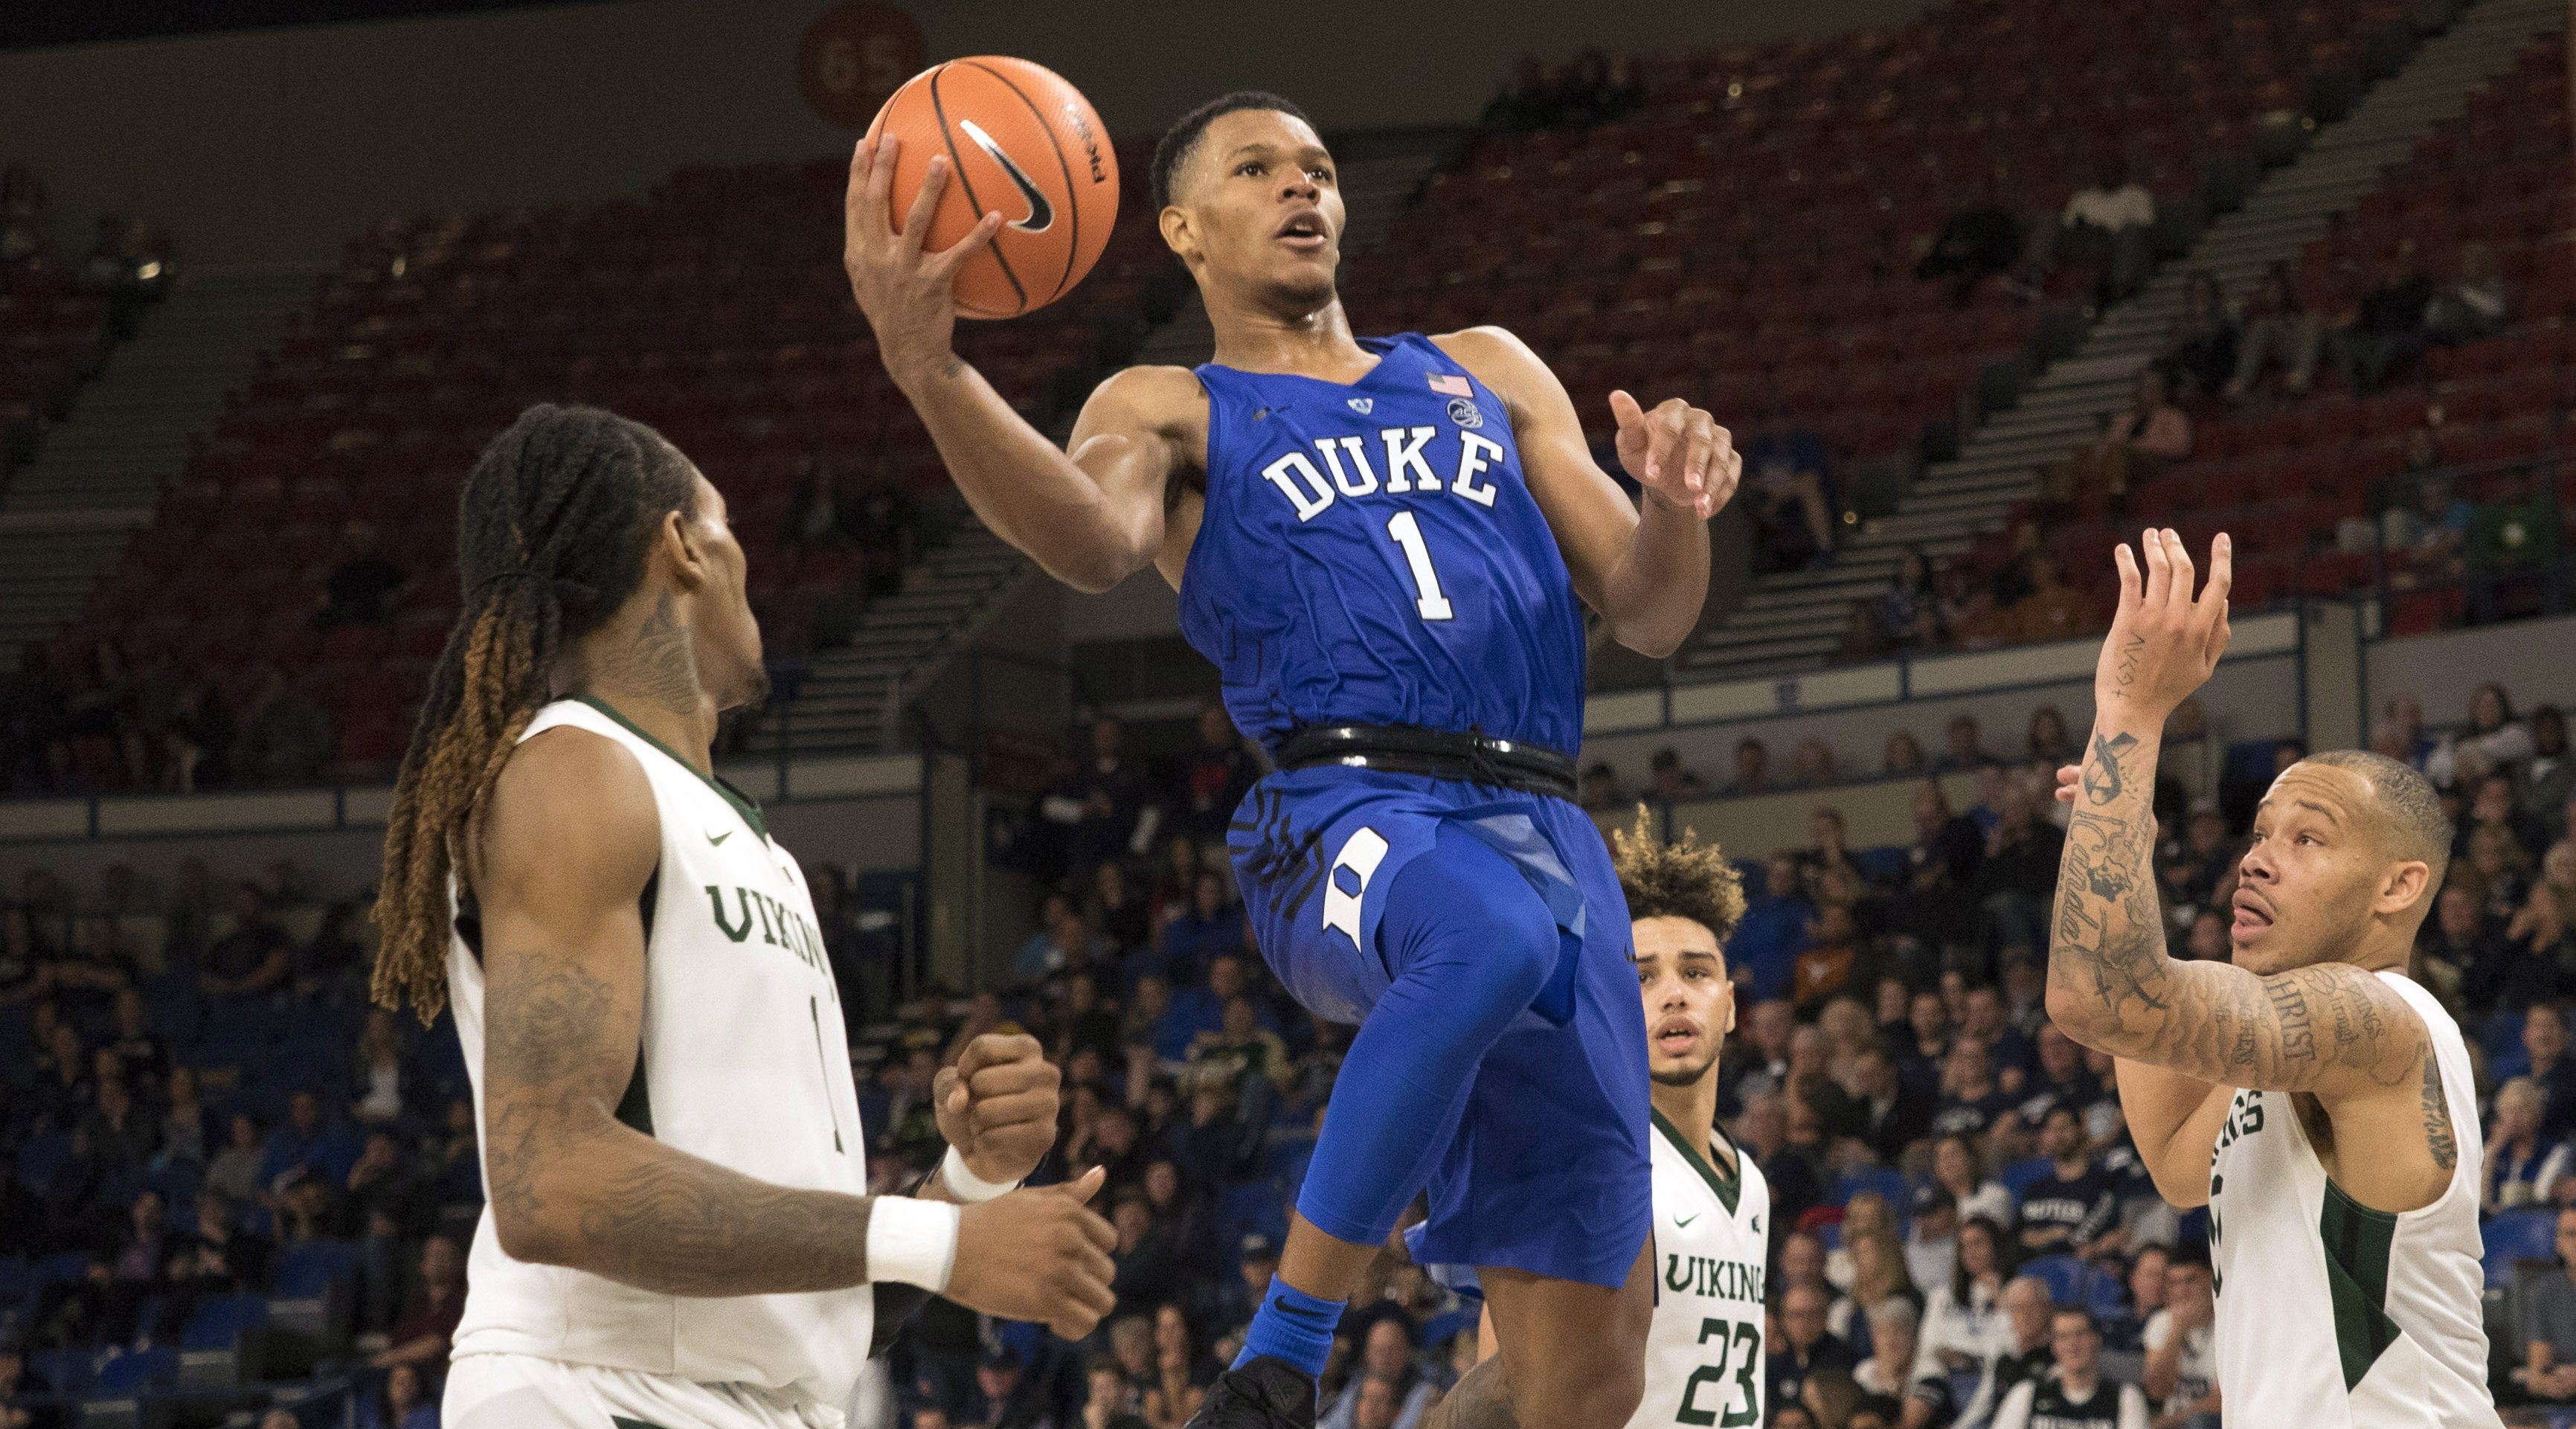 Marvin Bagley III leads No 1 Duke past Texas